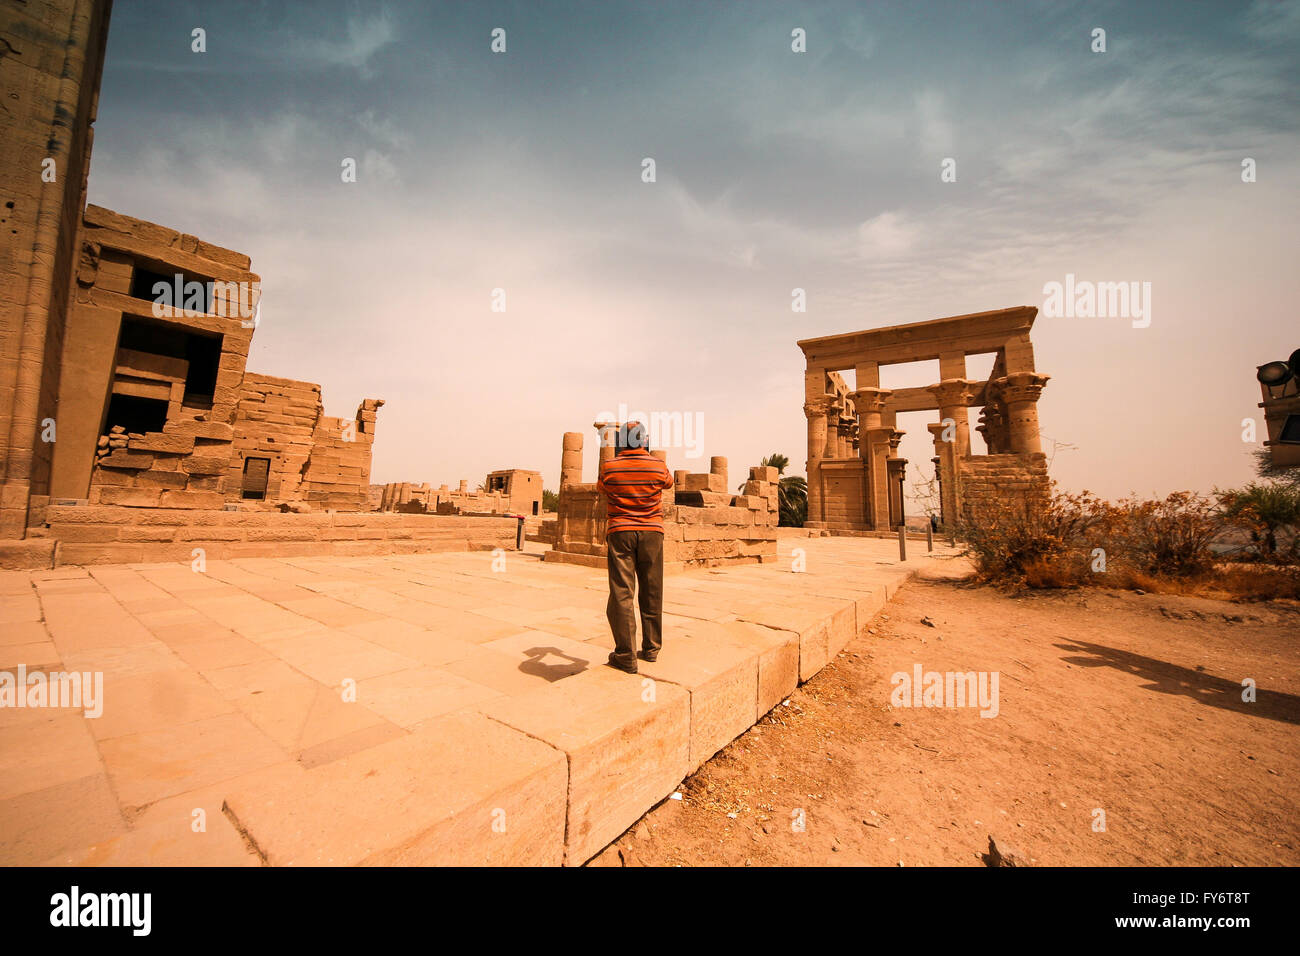 Temple of Philae, UNESCO World Heritage Site, Agilkia Island, Nile Valley, Nubia, Egypt, North Africa - Stock Image